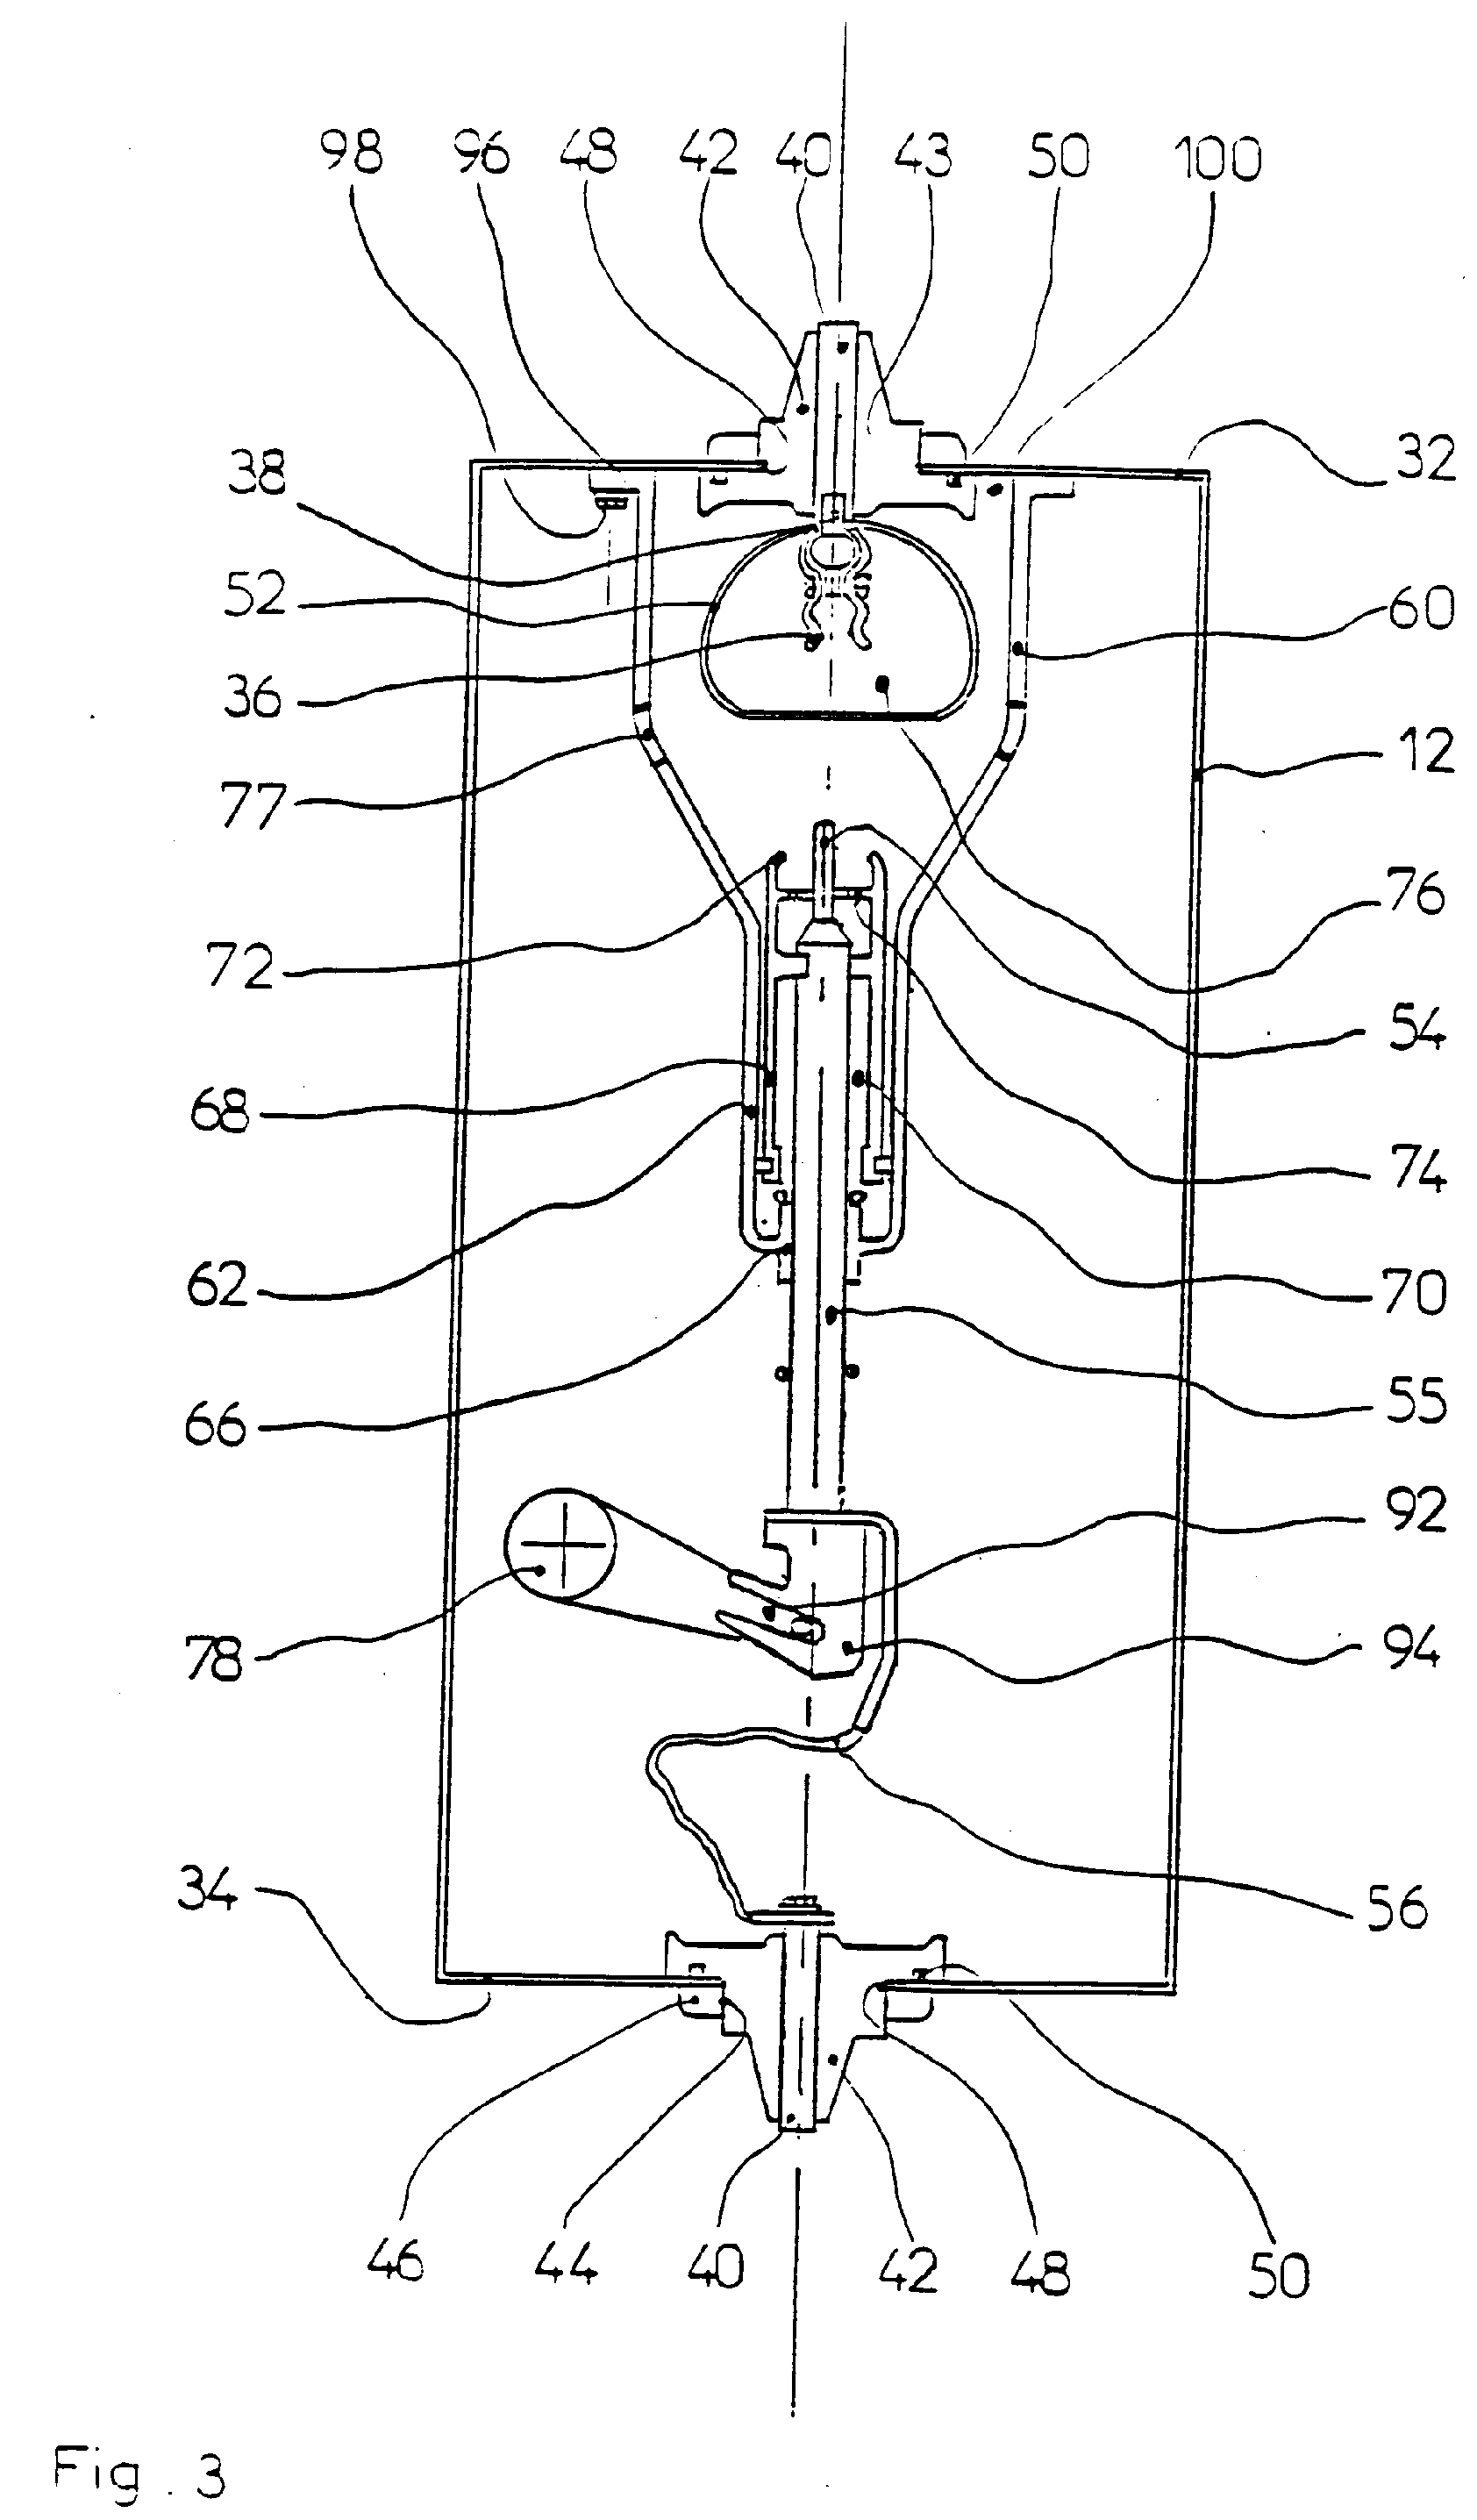 patent ep0433183b1 - three-pole gasinsulated high tension circuit breaker